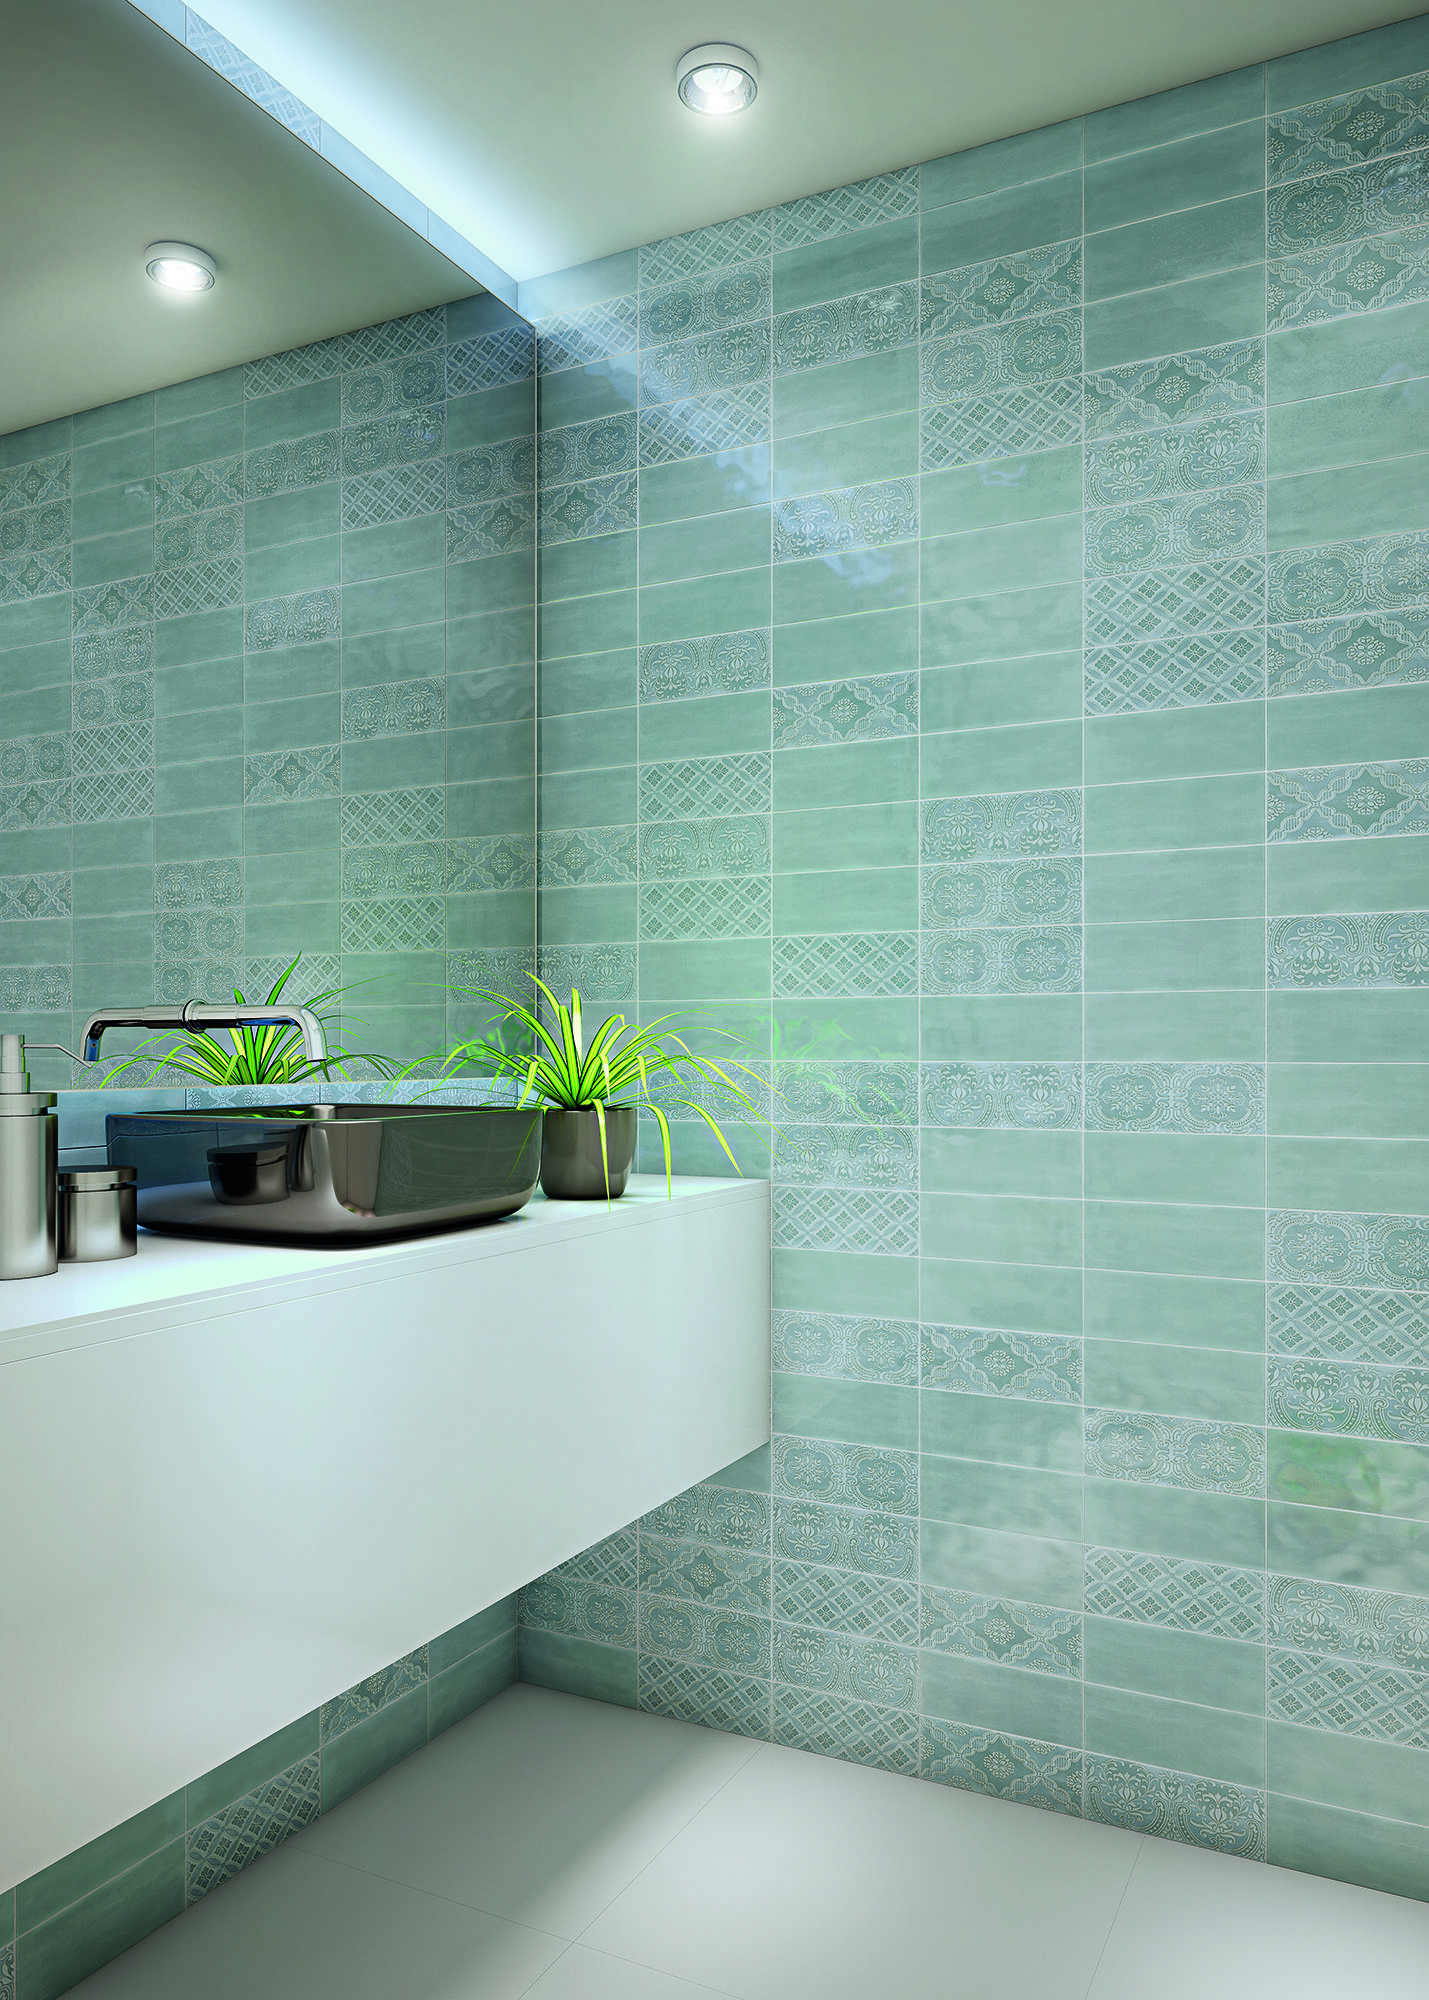 Maiolica Collection - Ceramic Wall Tiles by ROCA | Maiolica ...